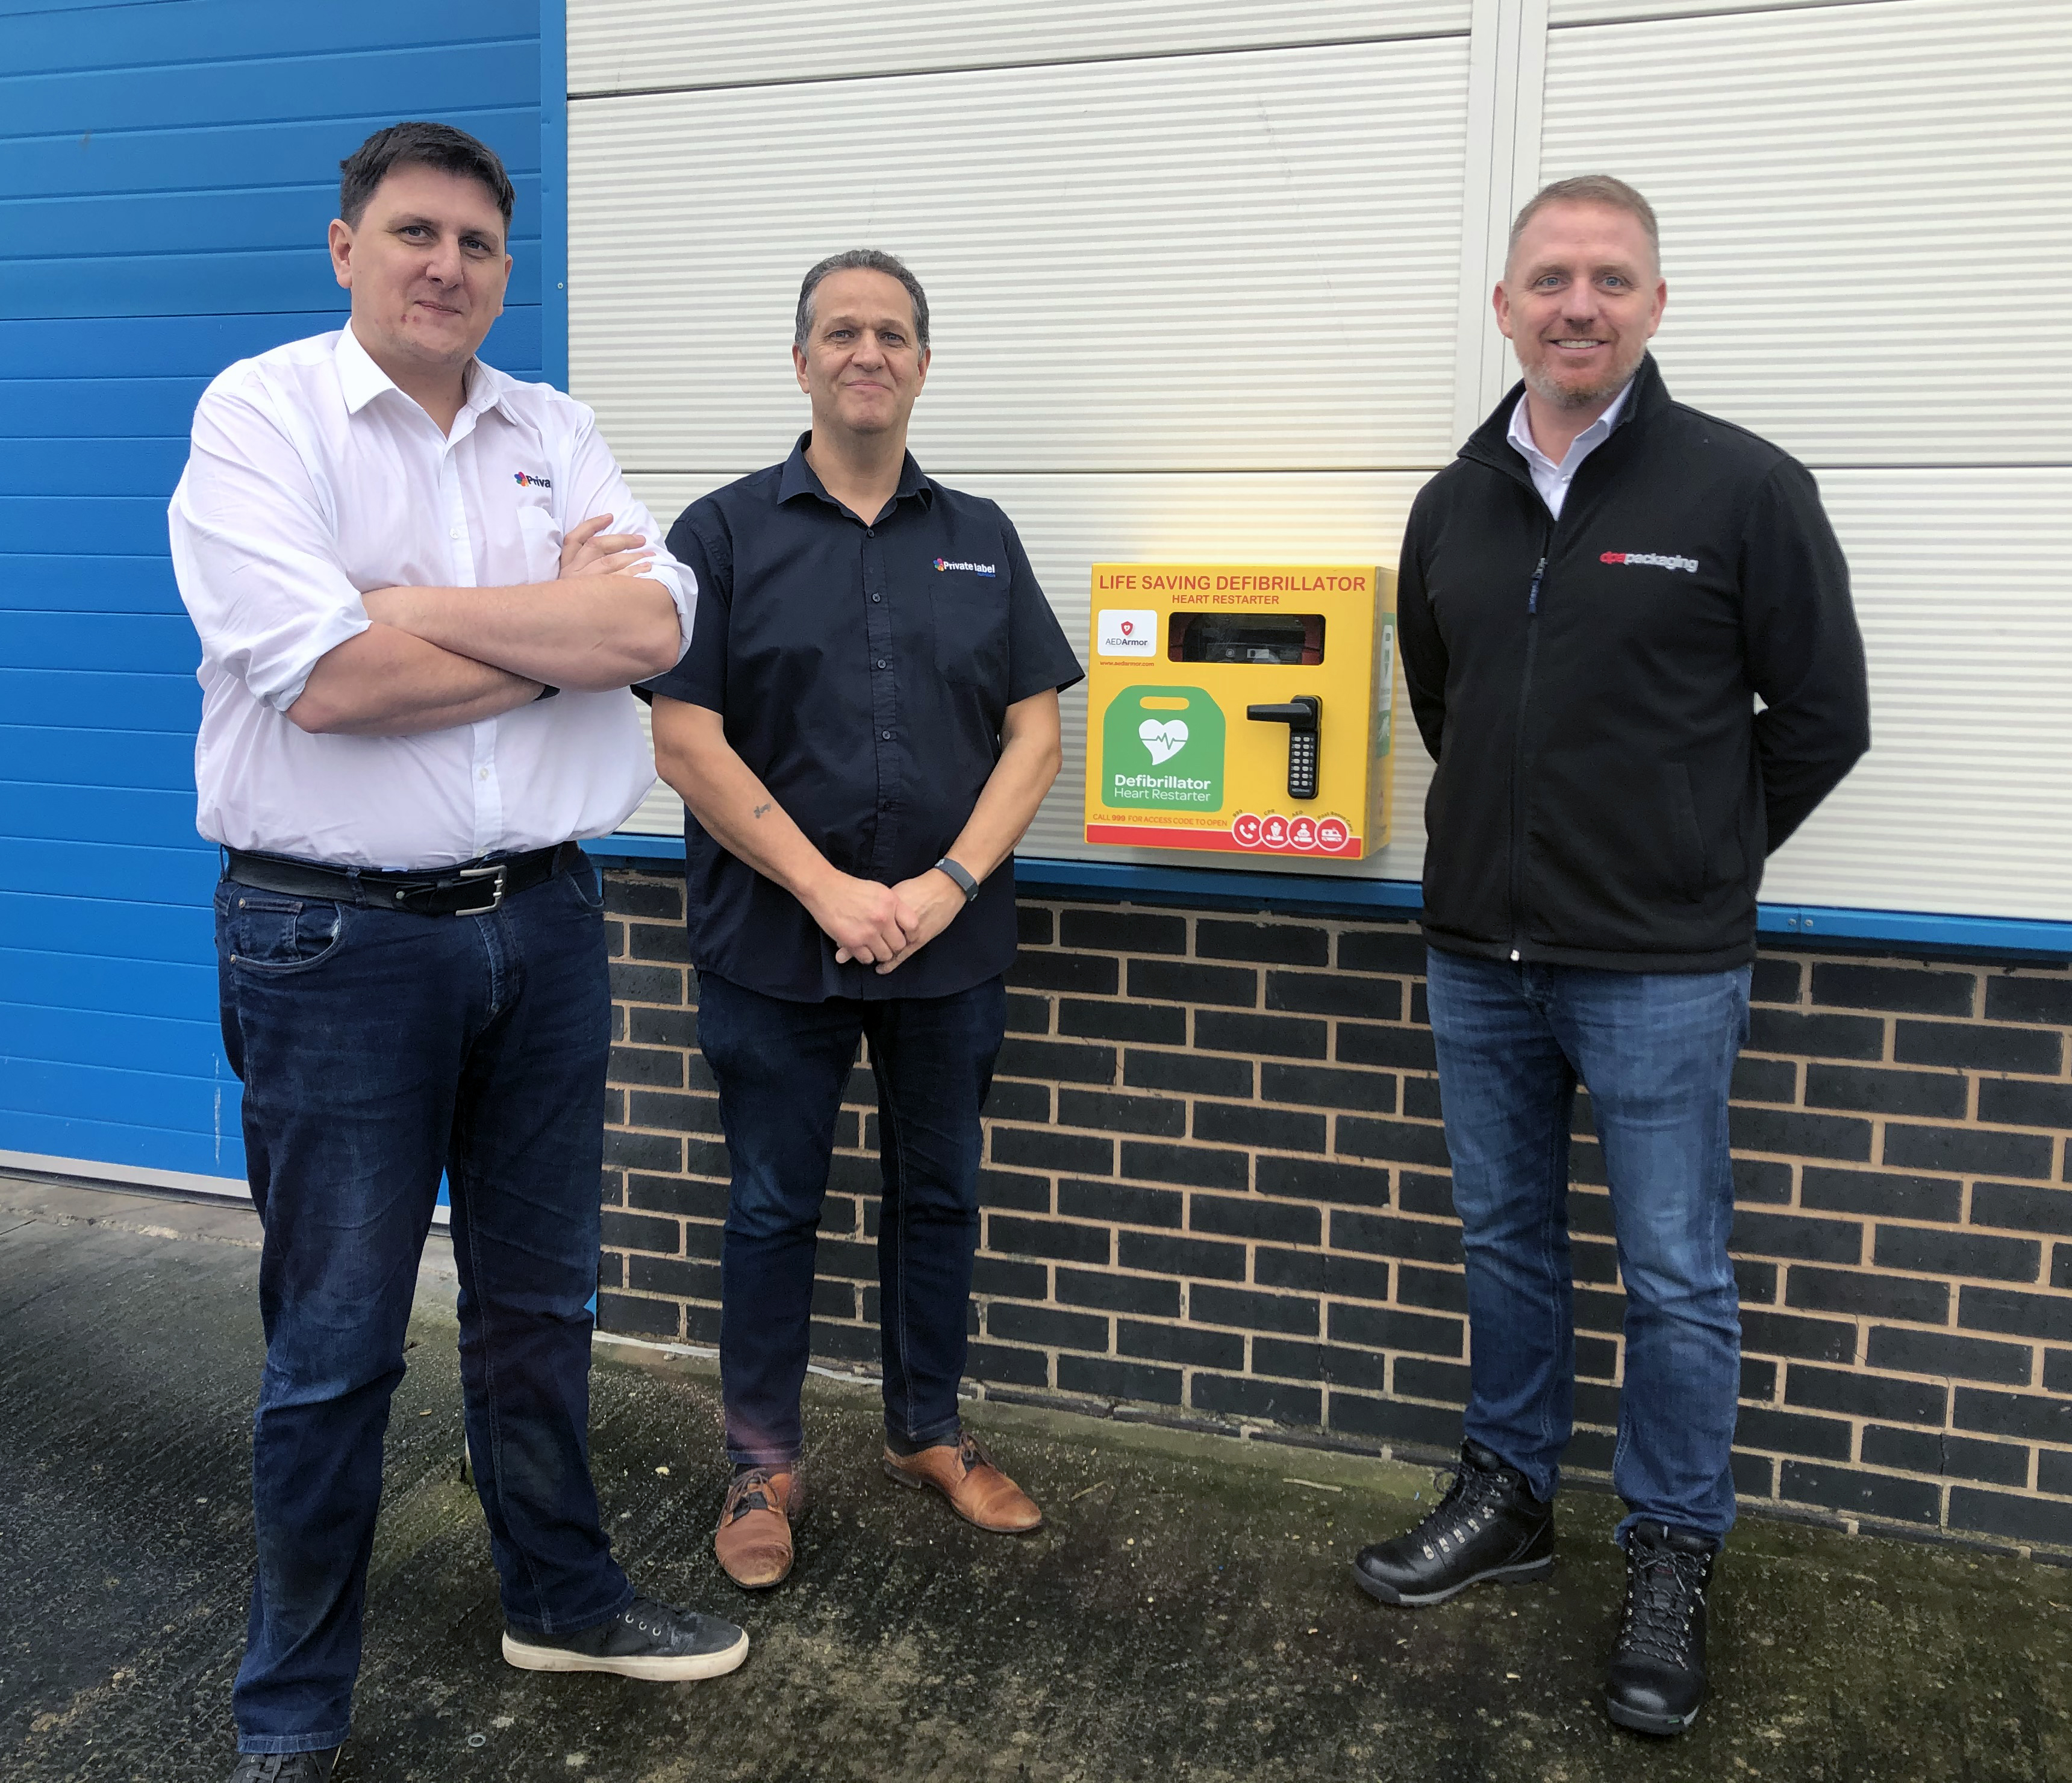 TWO BUSINESS NEIGHBOURS HELP SAVE LIVES WITH NEW PUBLIC ACCESS DEFIBRILLATOR